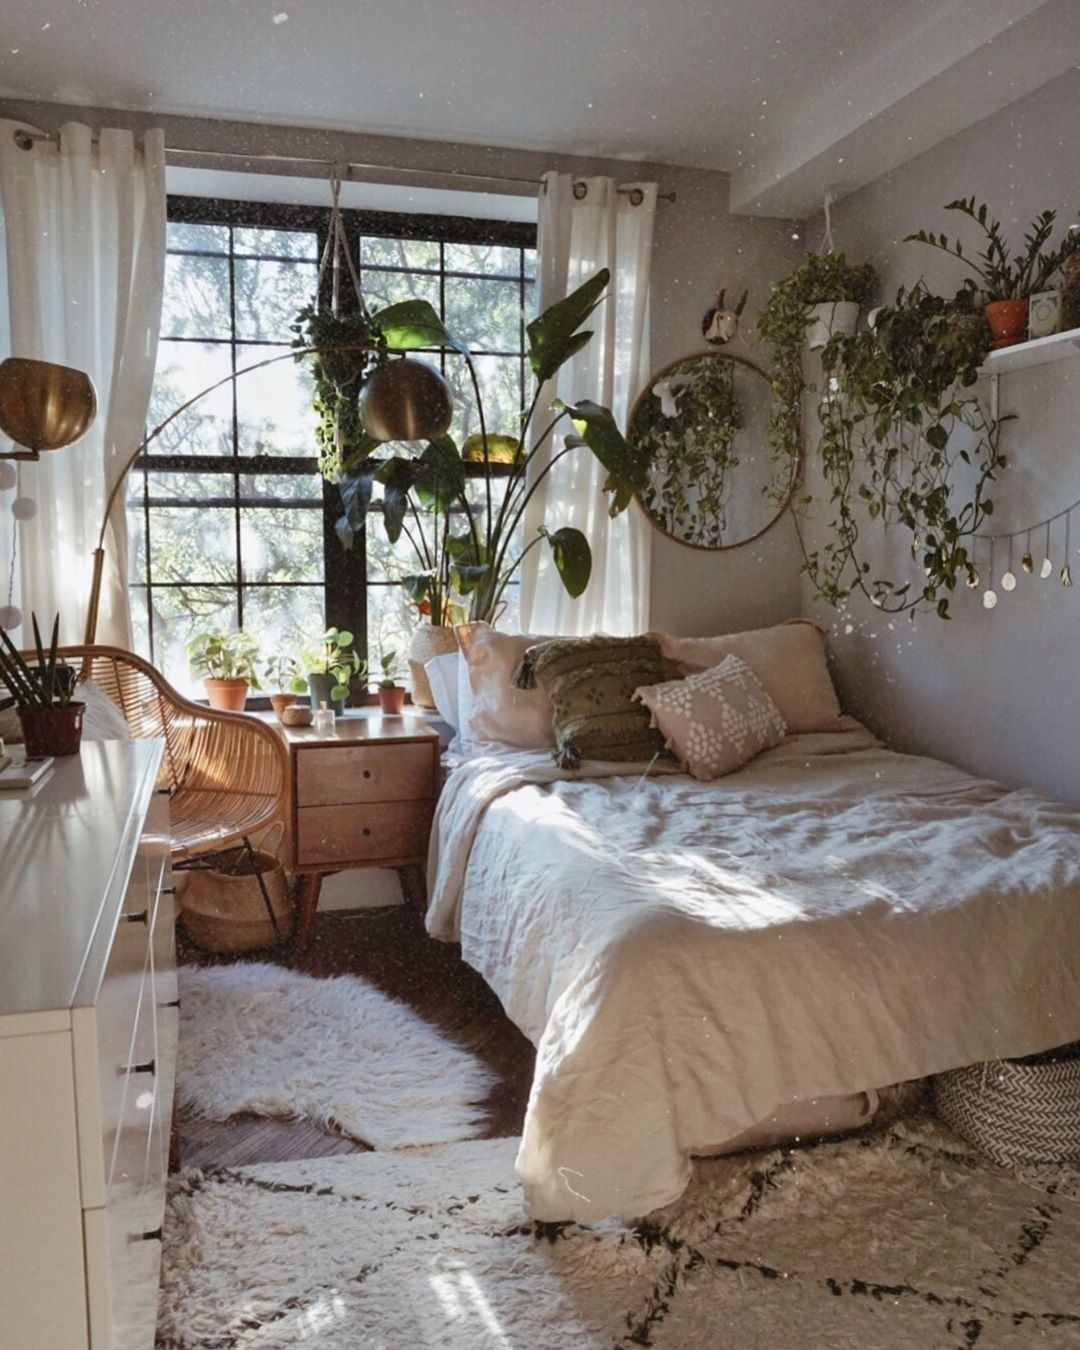 I Can Smell The Morning Mist Jnaydaily Room Inspiration Bedroom Small Room Bedroom Bedroom Decor Design